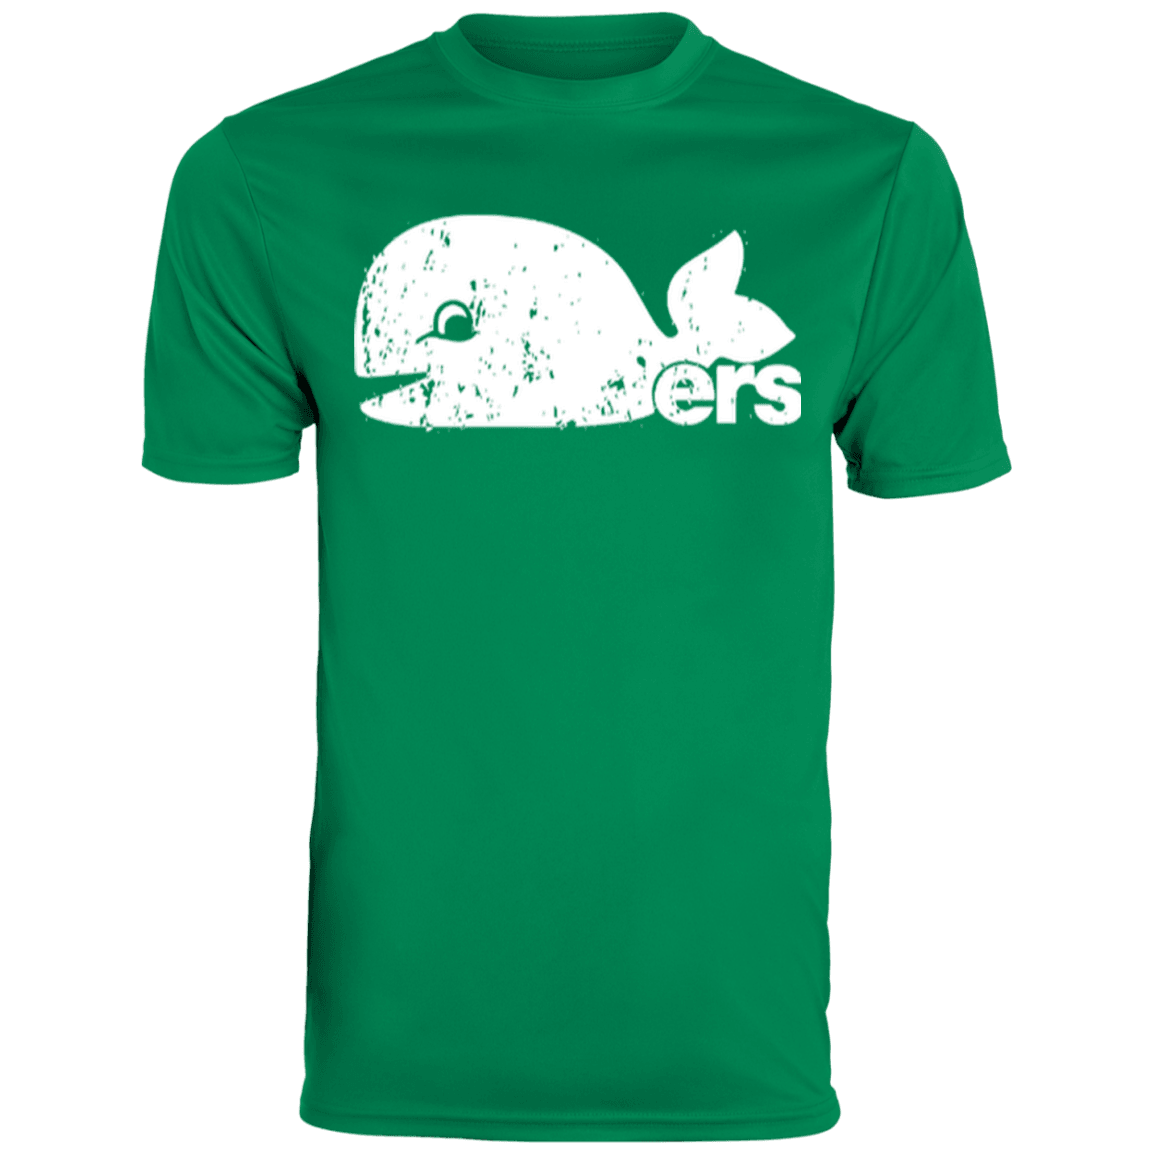 Hartford Whalers Pucky Inspired Men s Dri Fit Wicking T-Shirt 65945e760